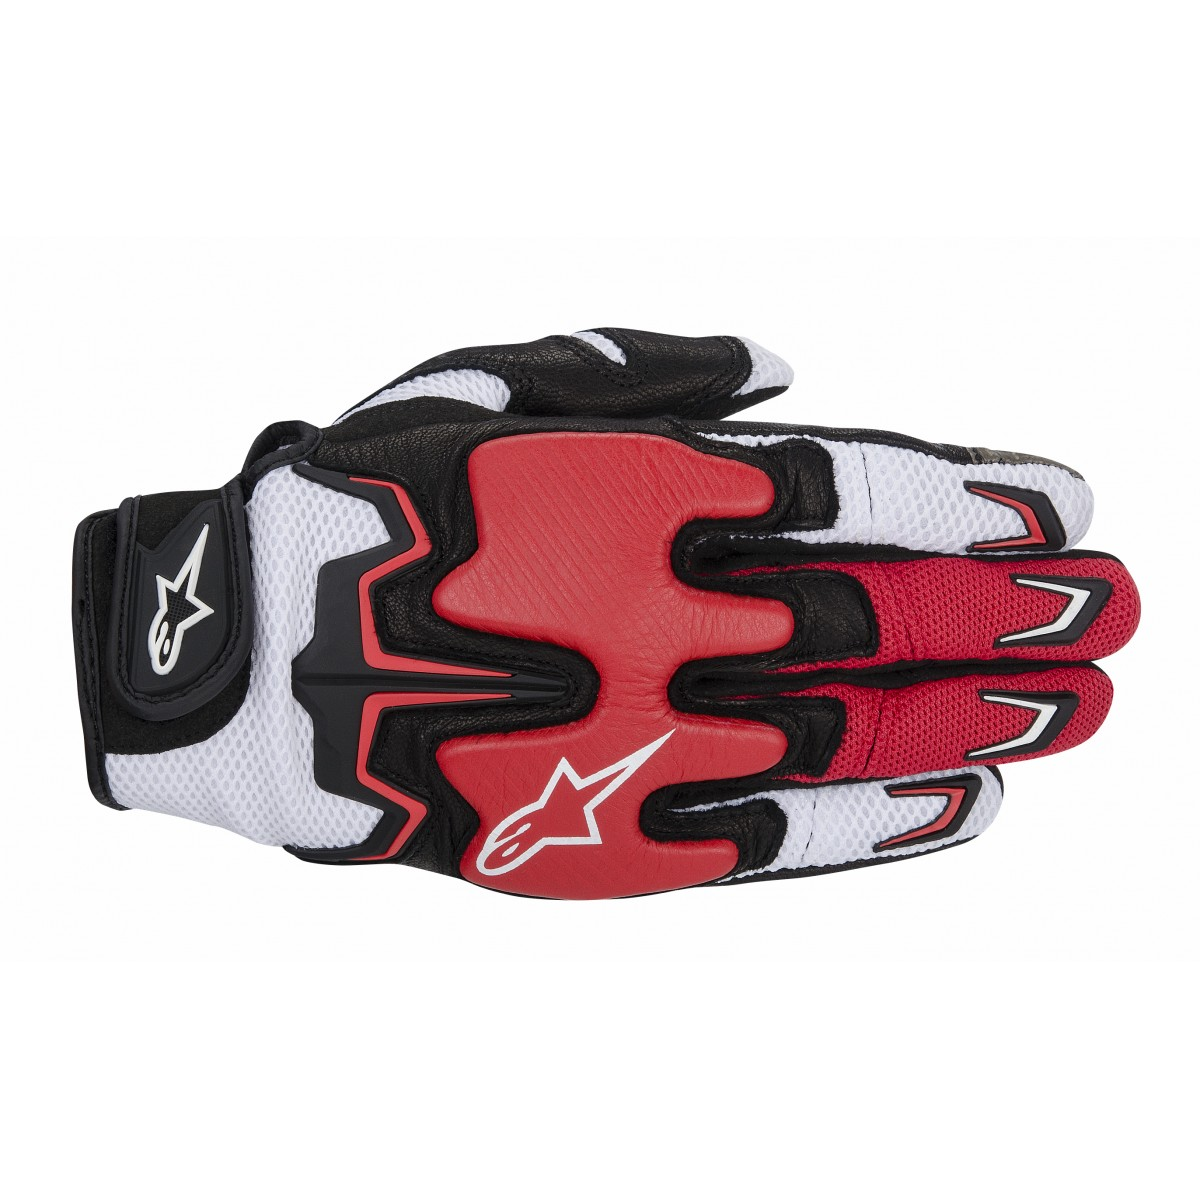 Luva Alpinestars Fighter Air Red  - Super Bike - Loja Oficial Alpinestars